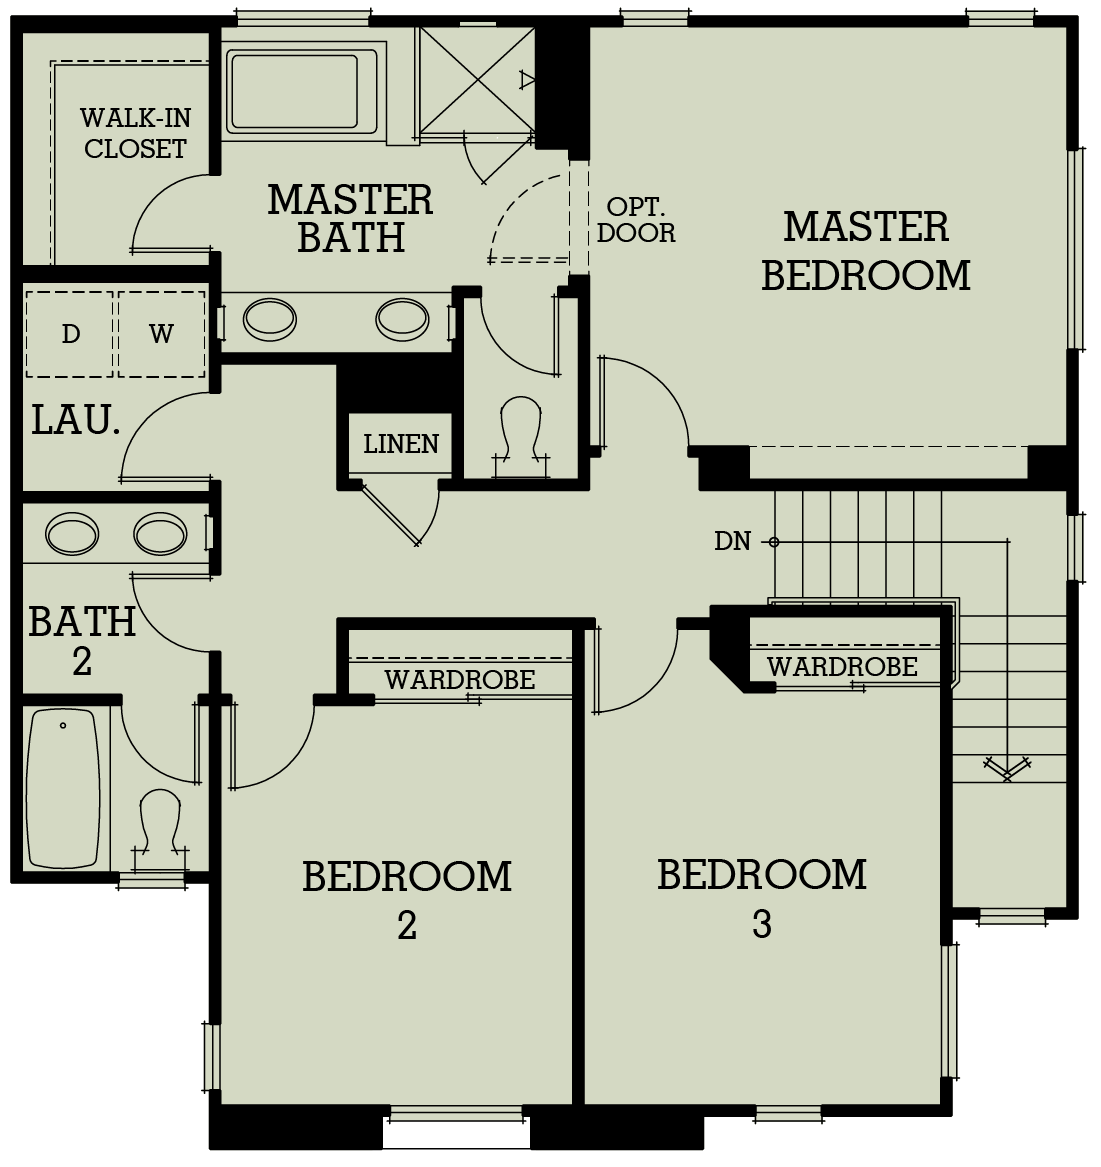 wardrobe drawing floor plan